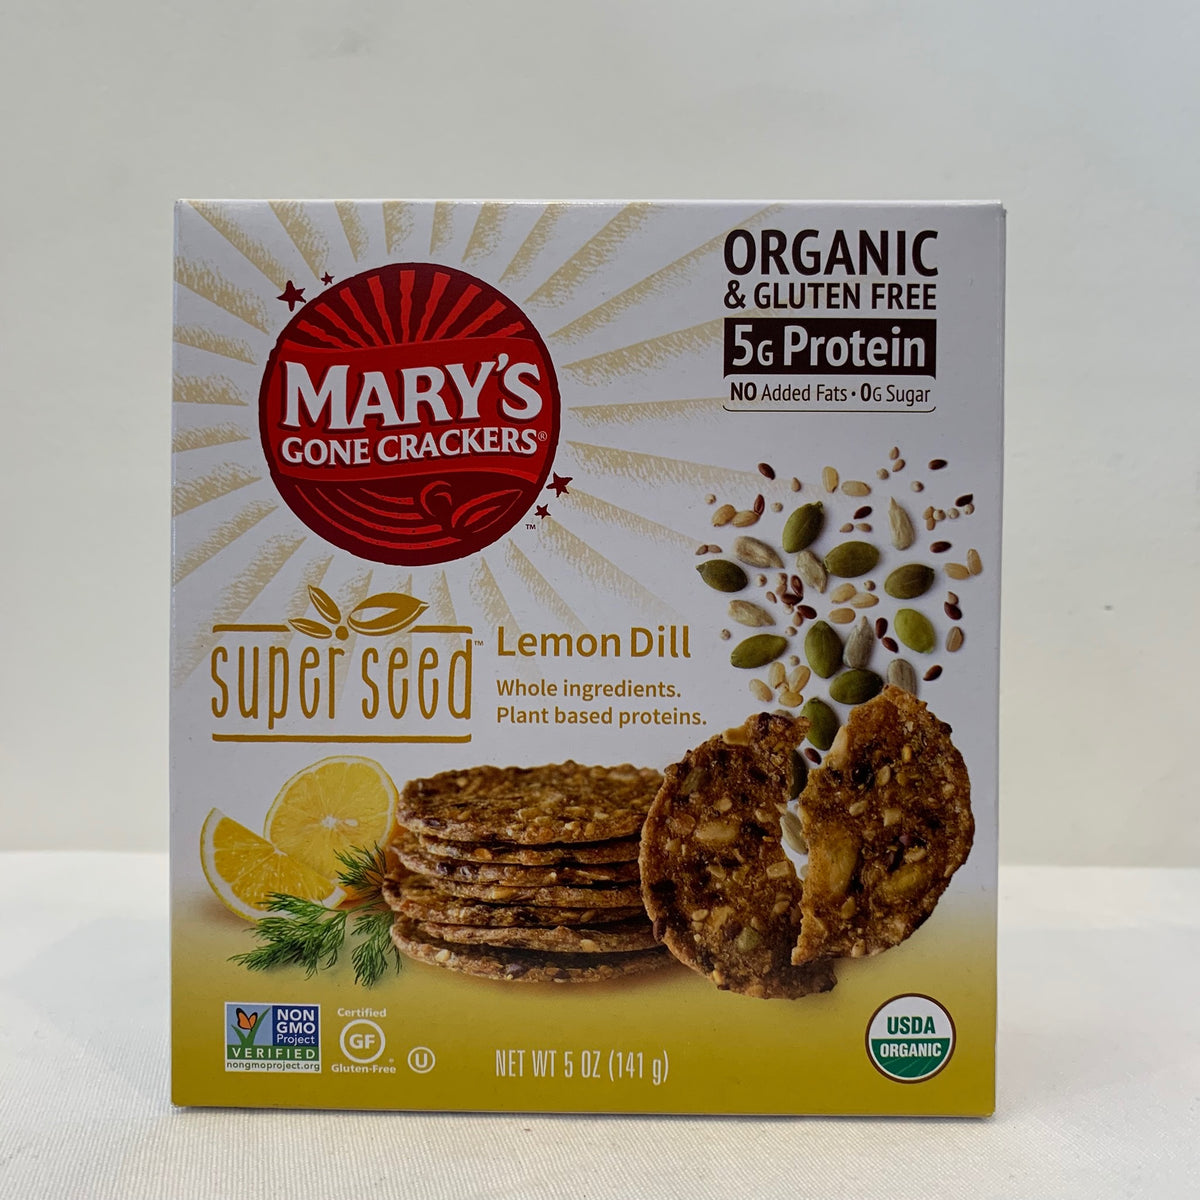 Mary's Super Seed Lemon Dill